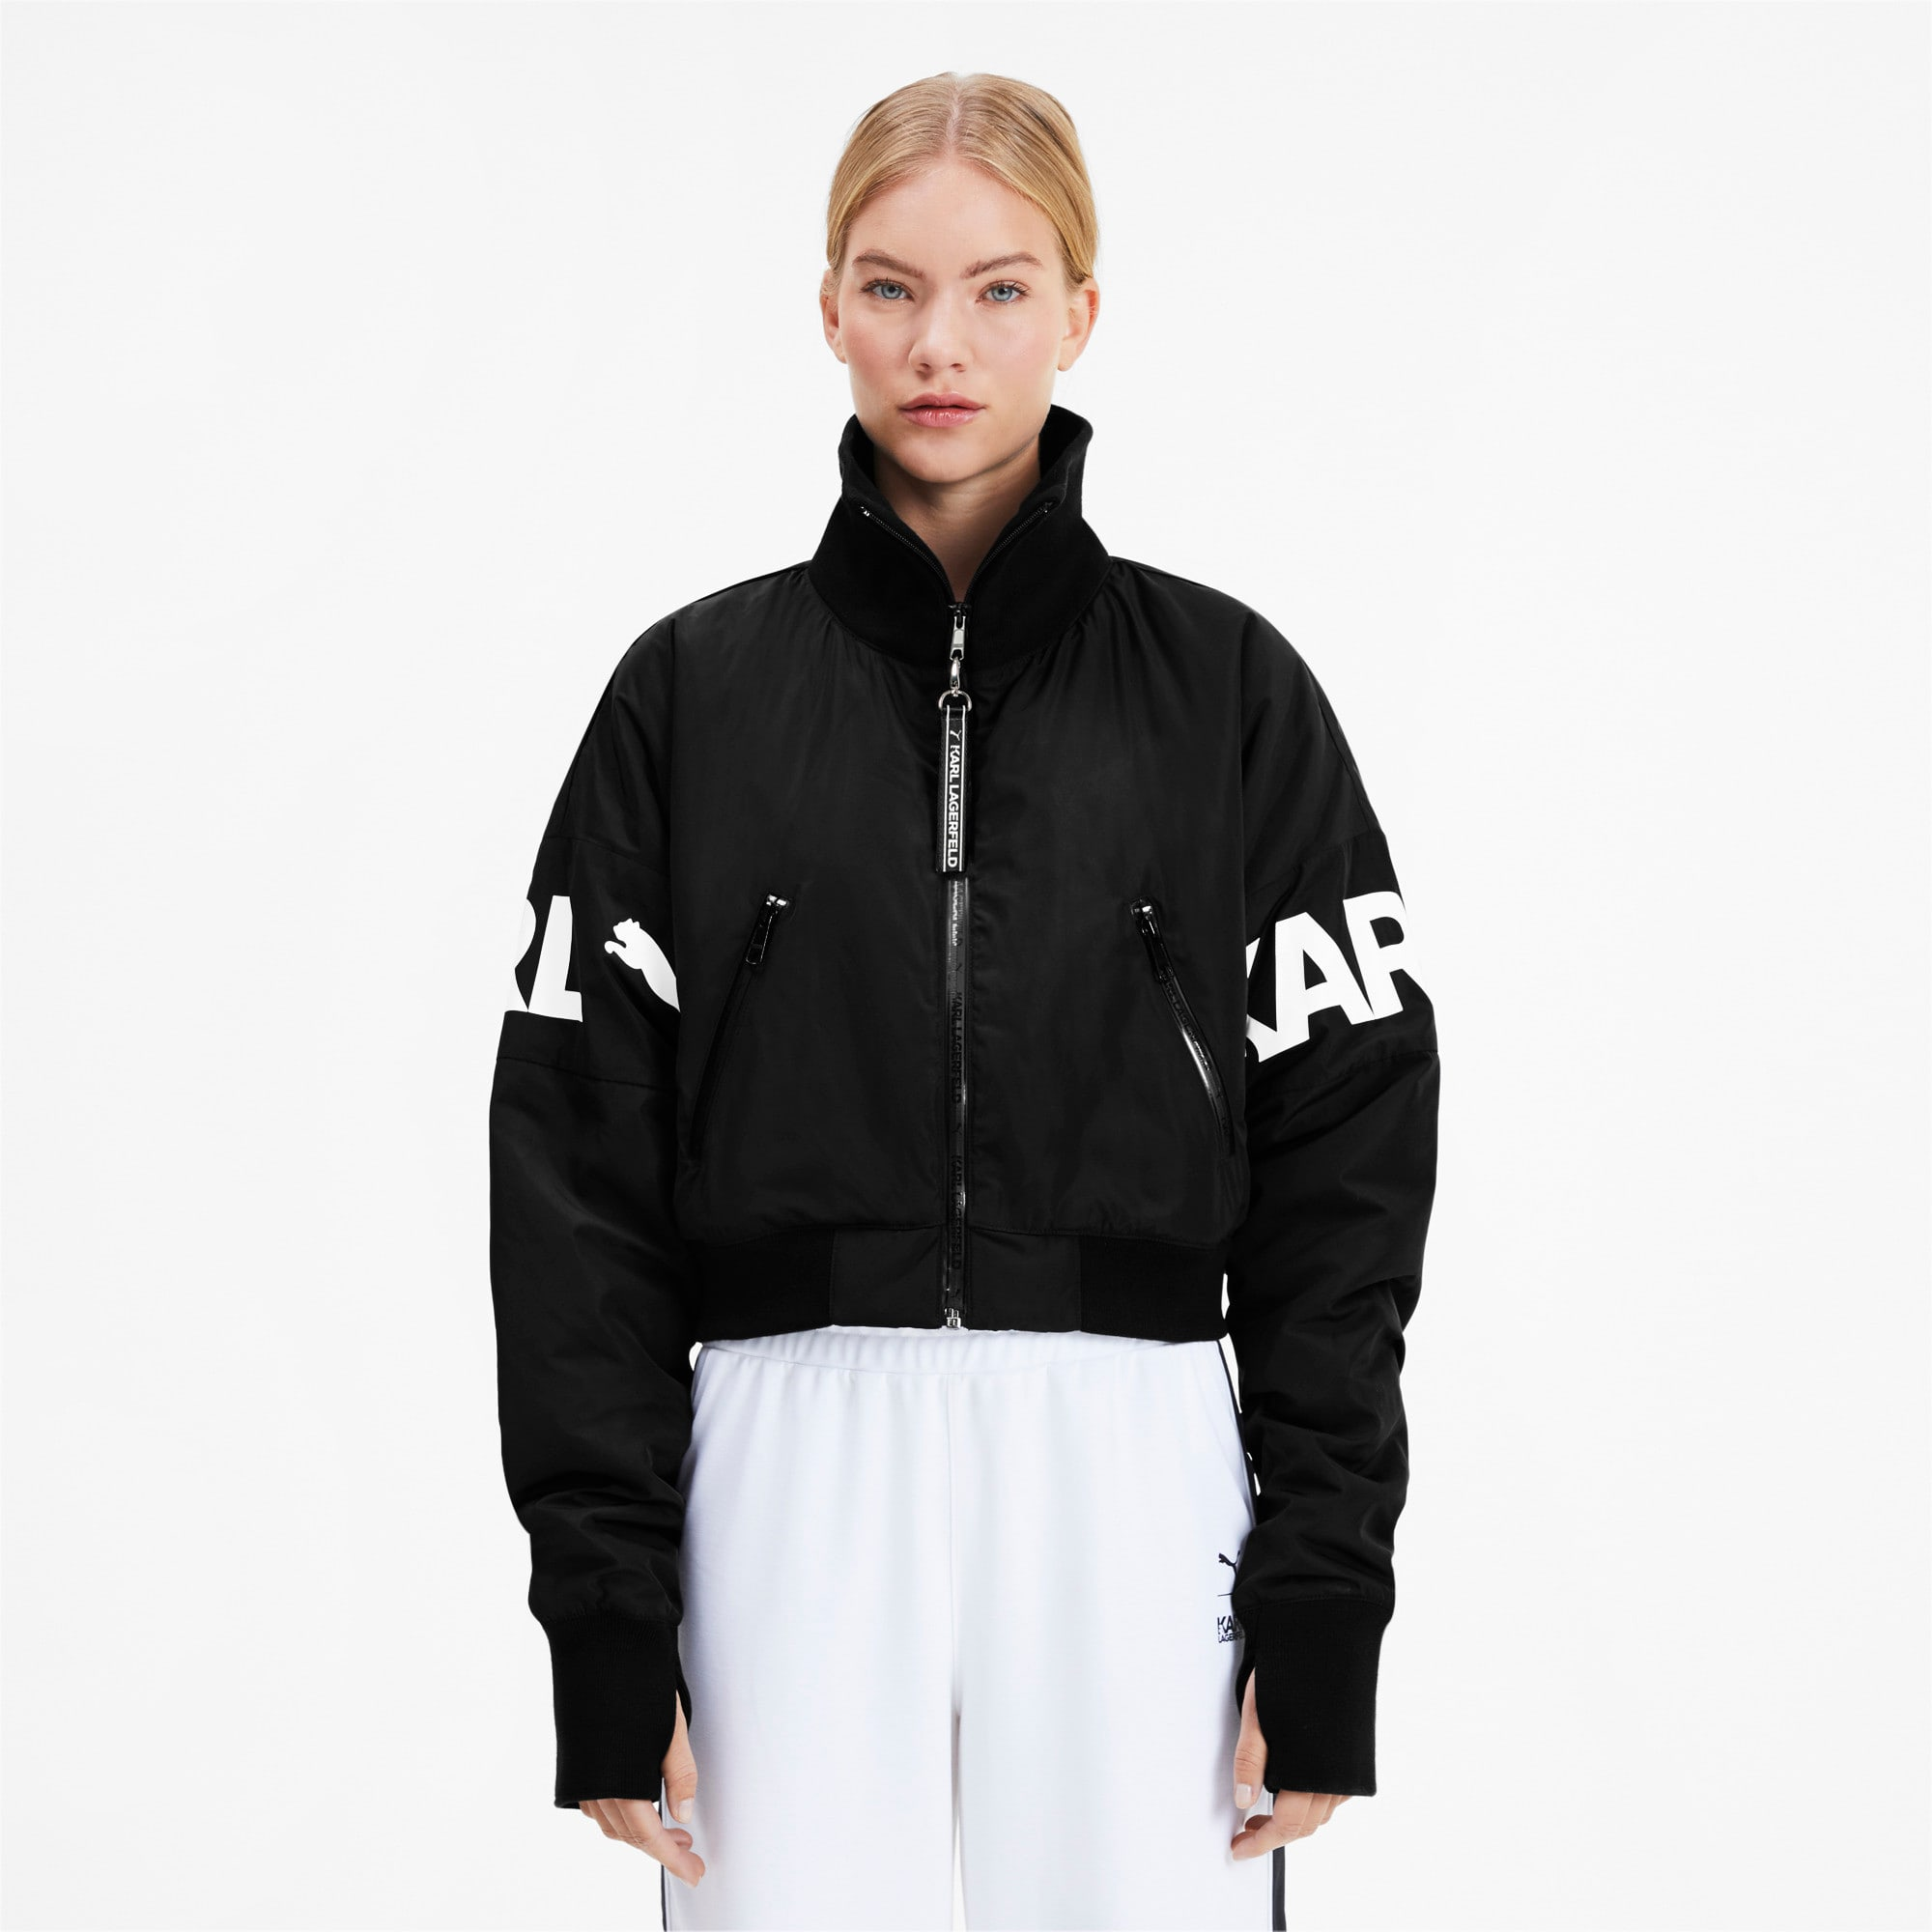 Thumbnail 1 of PUMA x KARL LAGERFELD Women's Bomber Jacket, Puma Black, medium